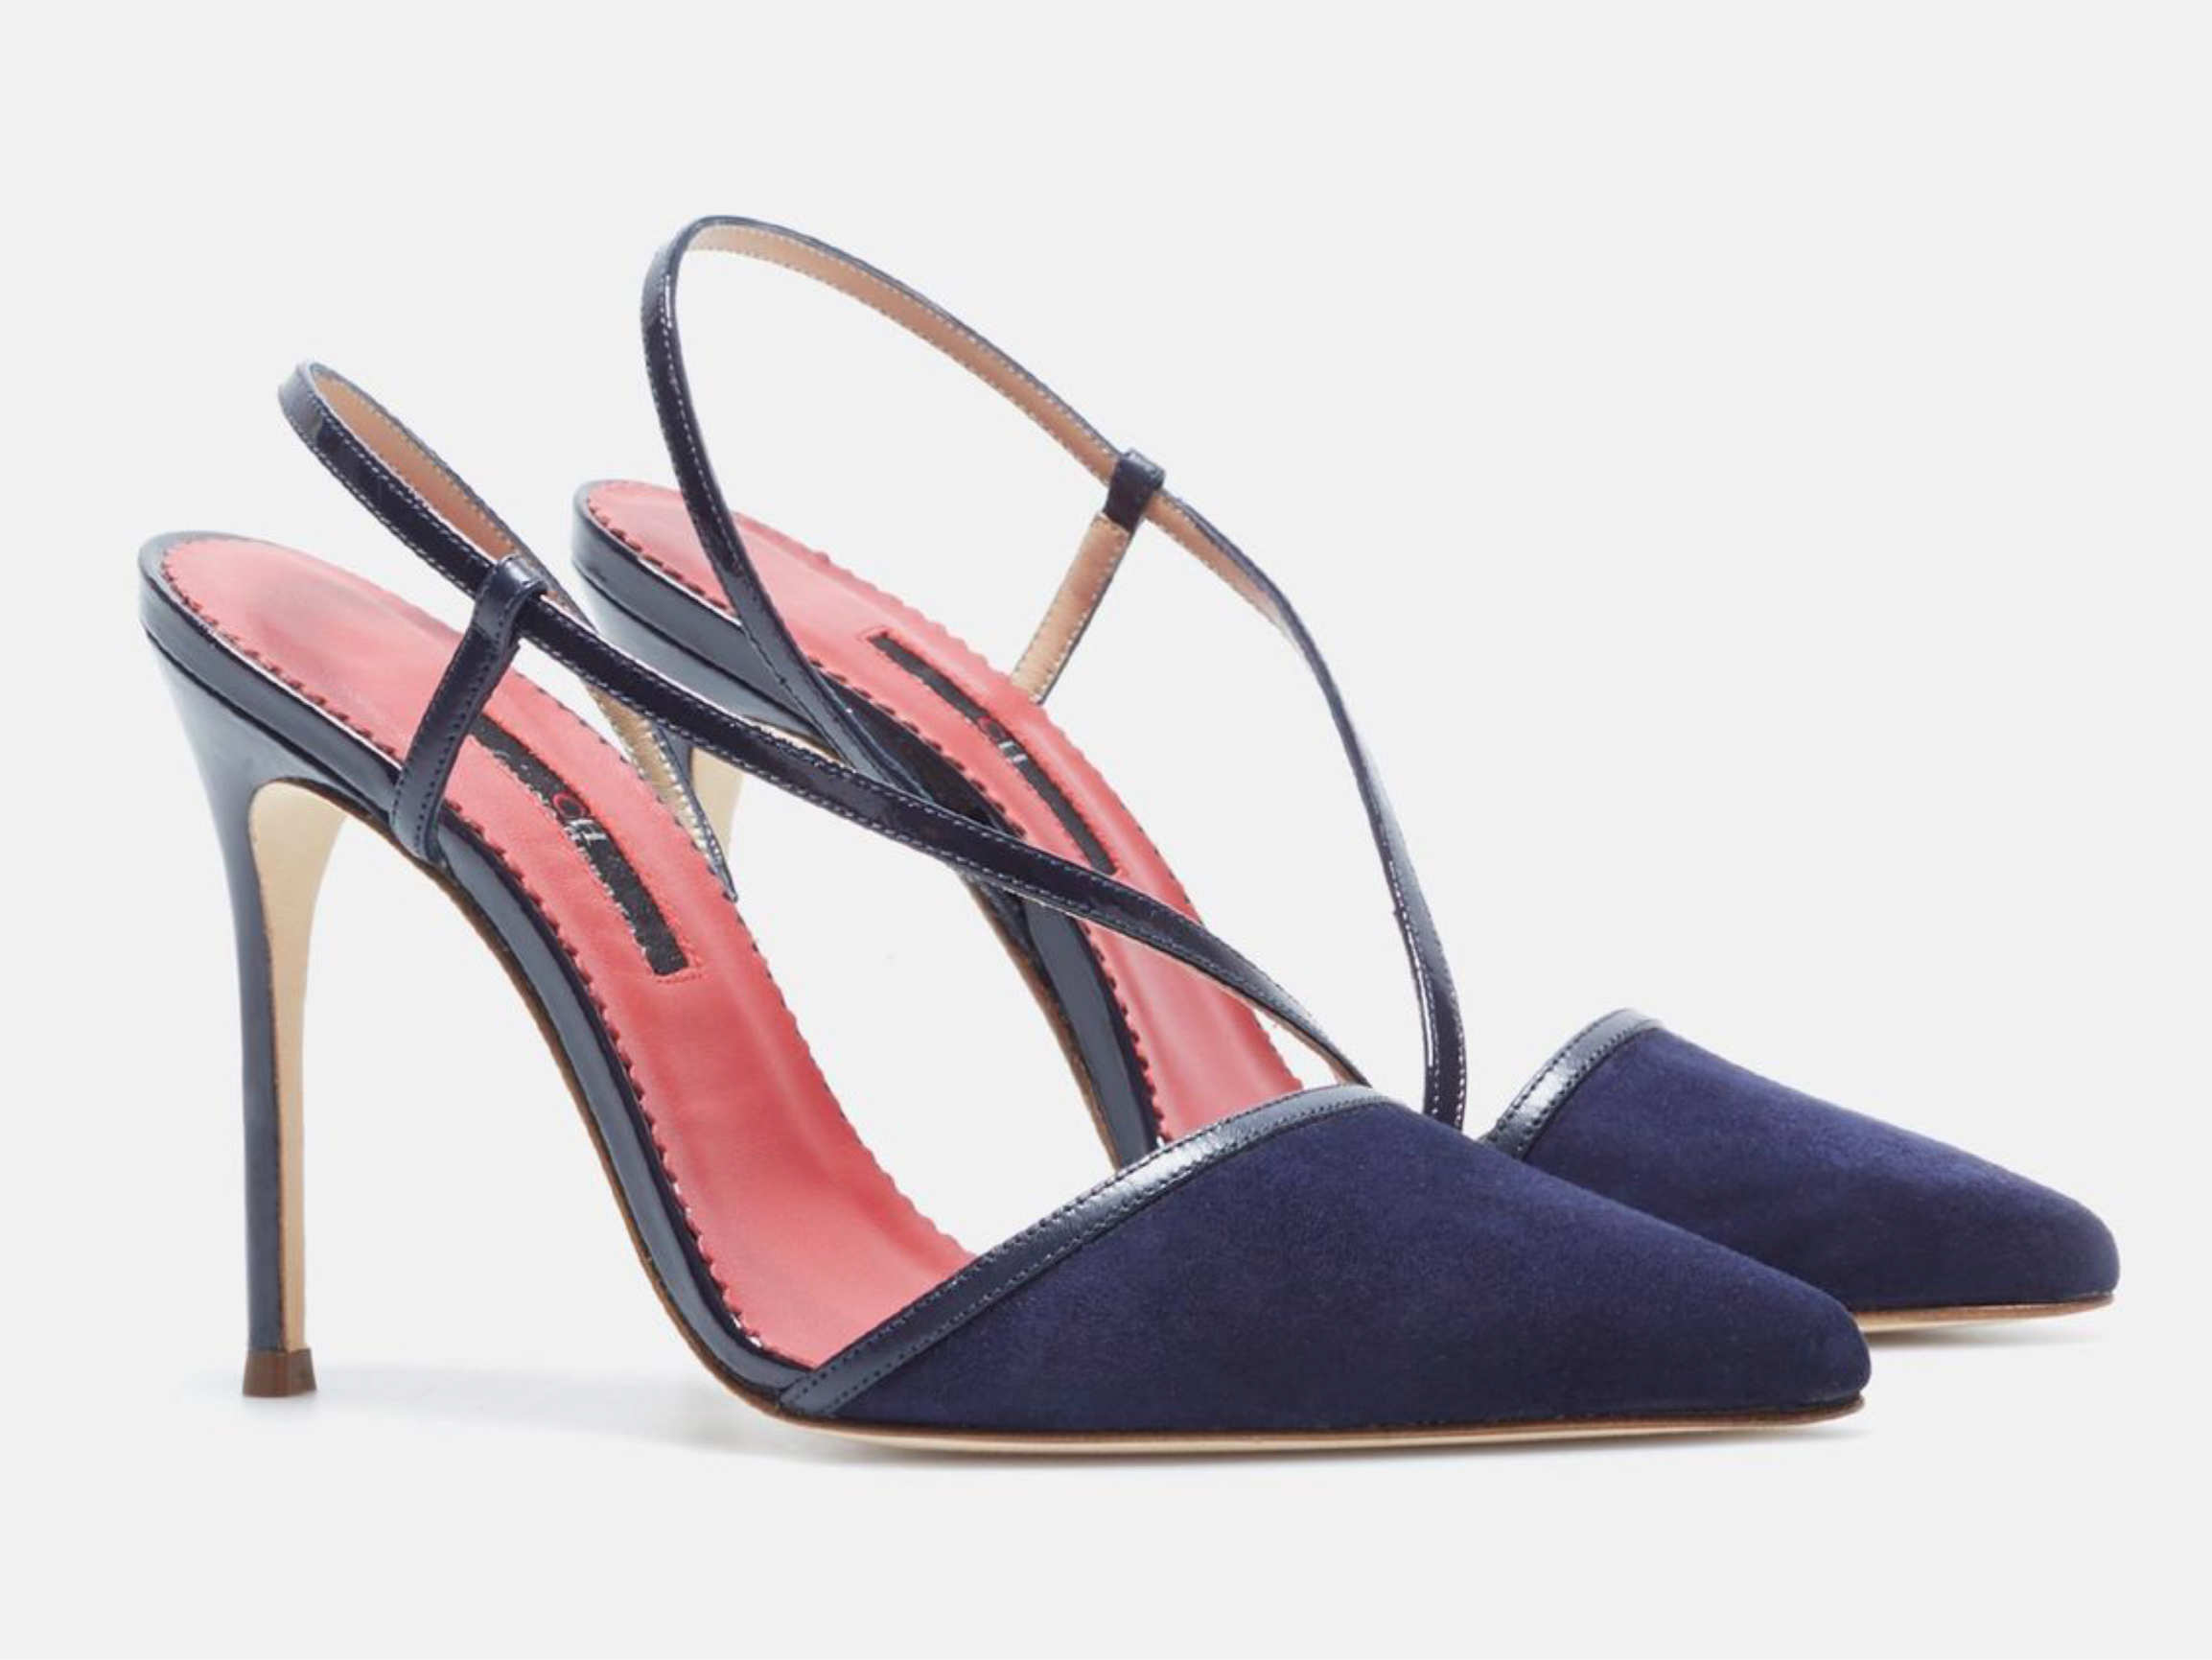 shop carolina herrera shoes